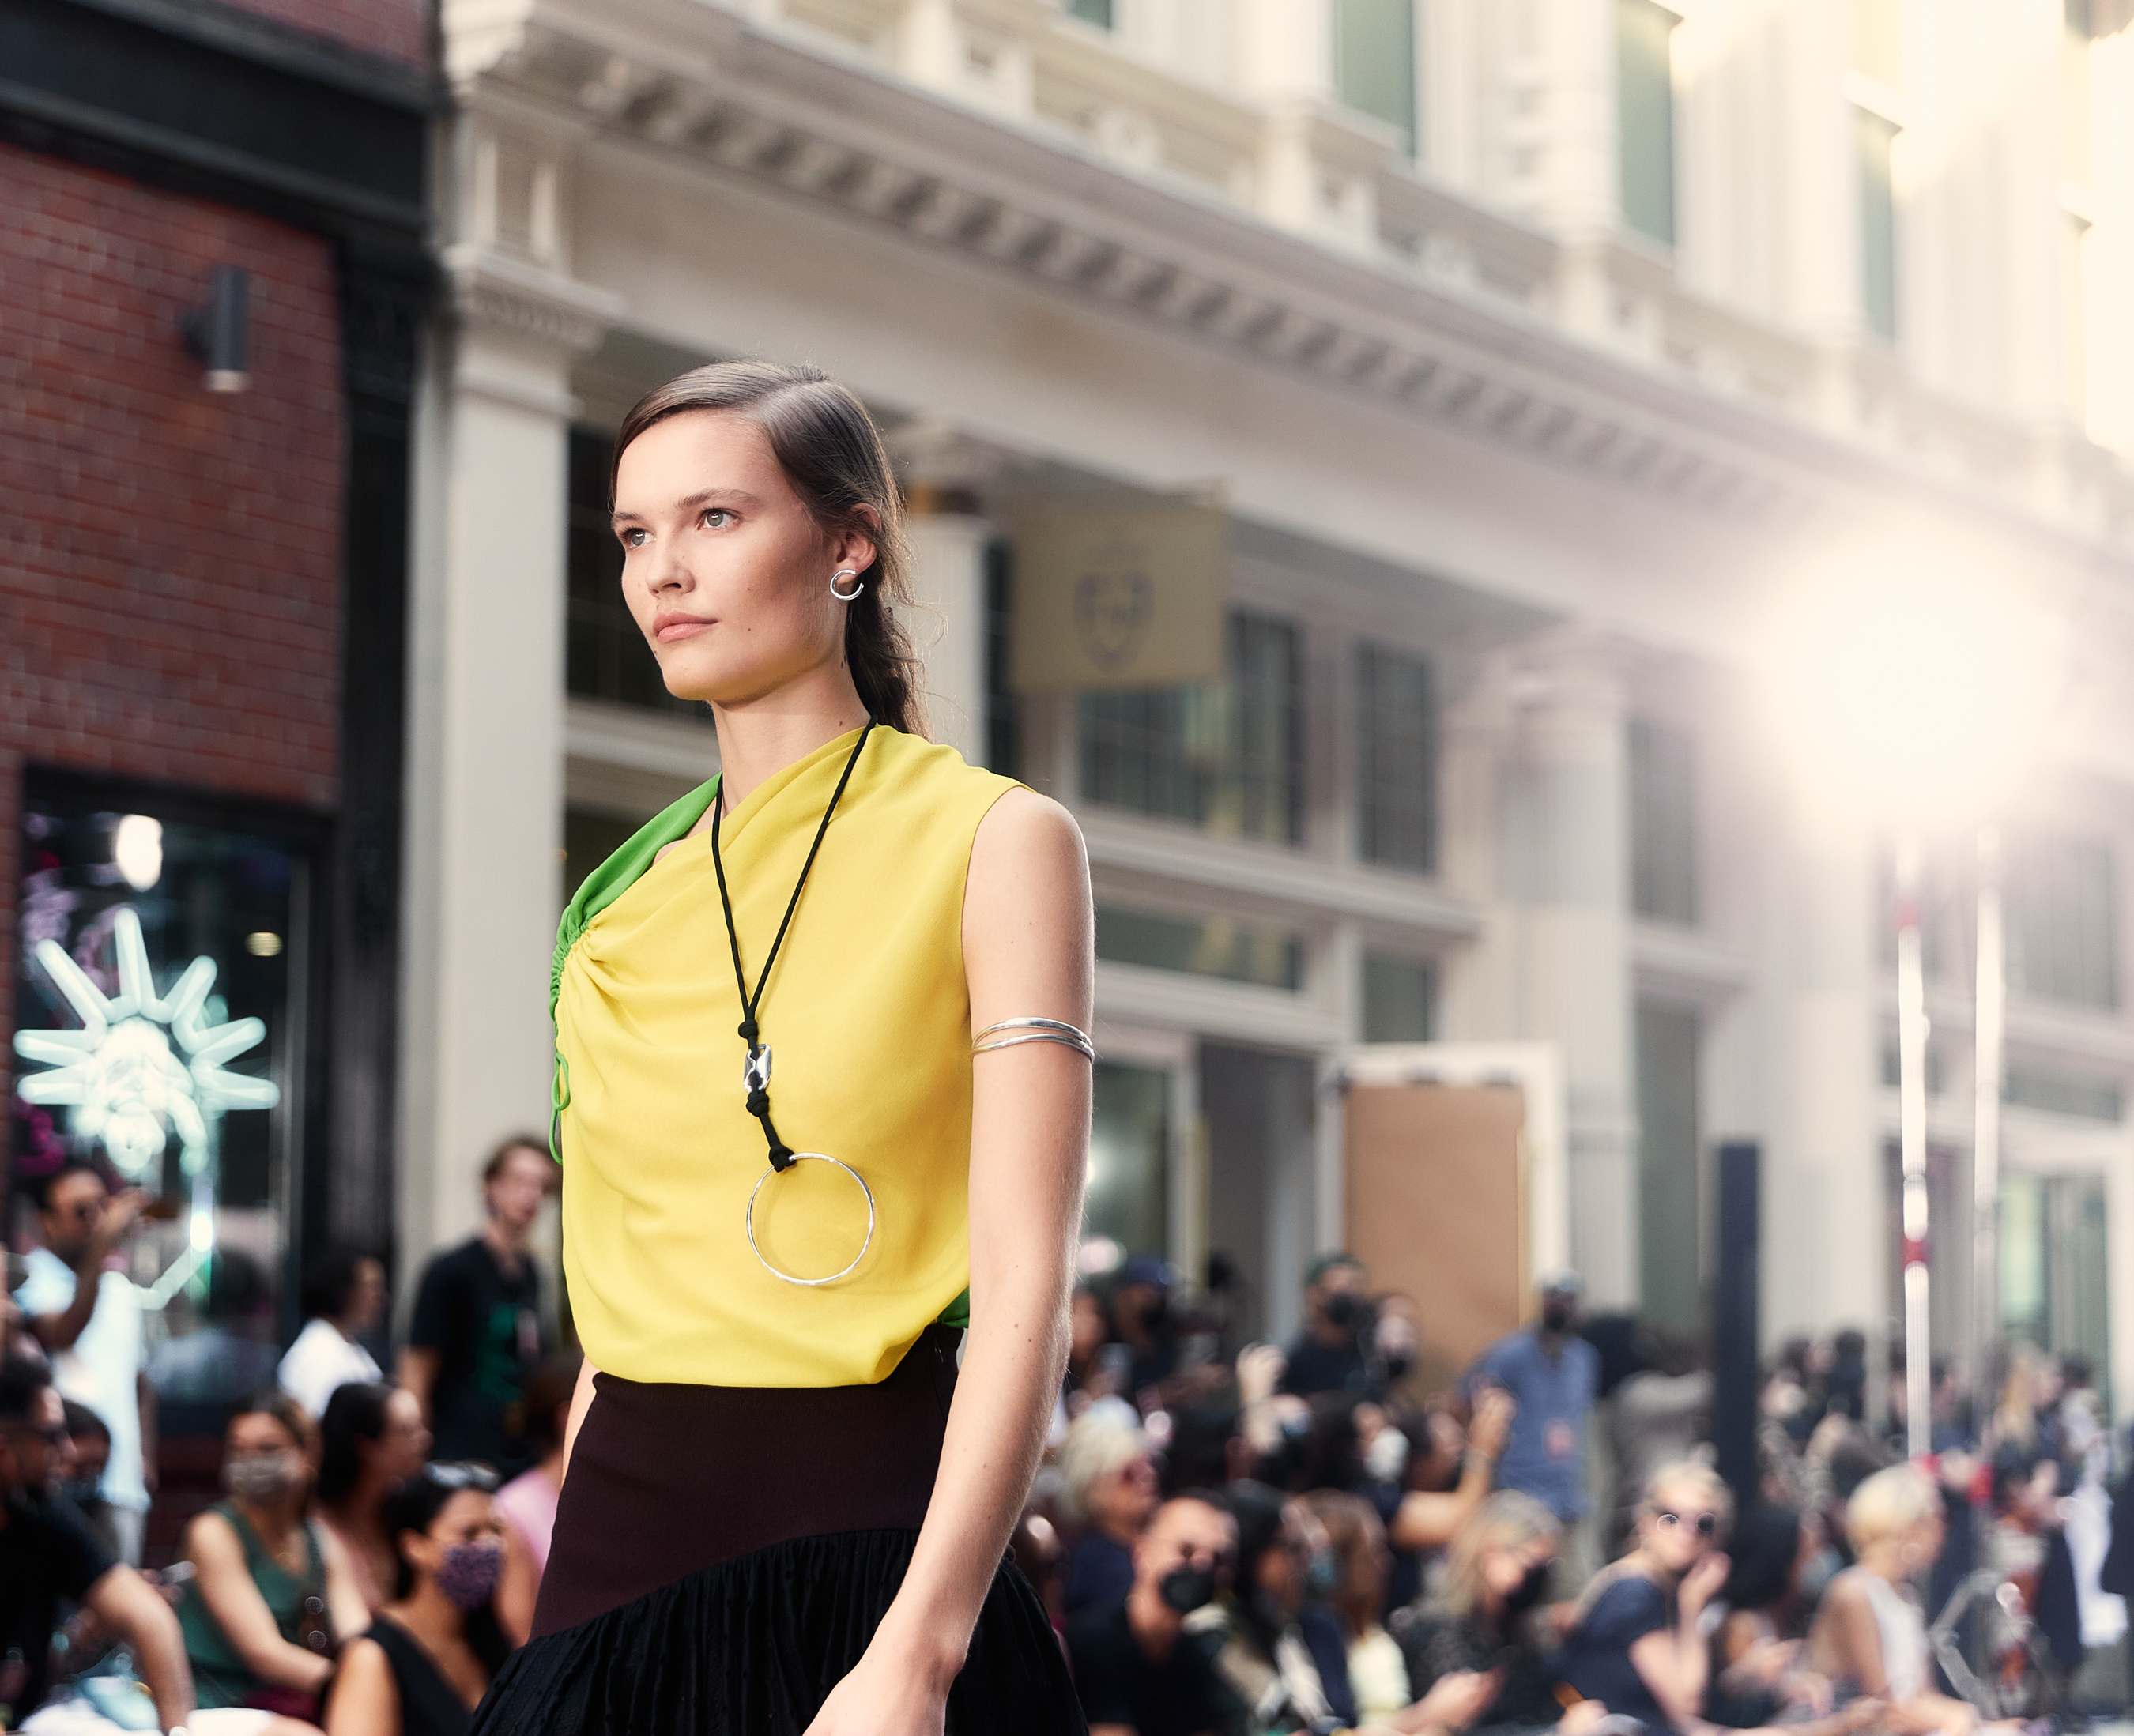 Tory Burch Spring 2022 Atmosphere Fashion Show